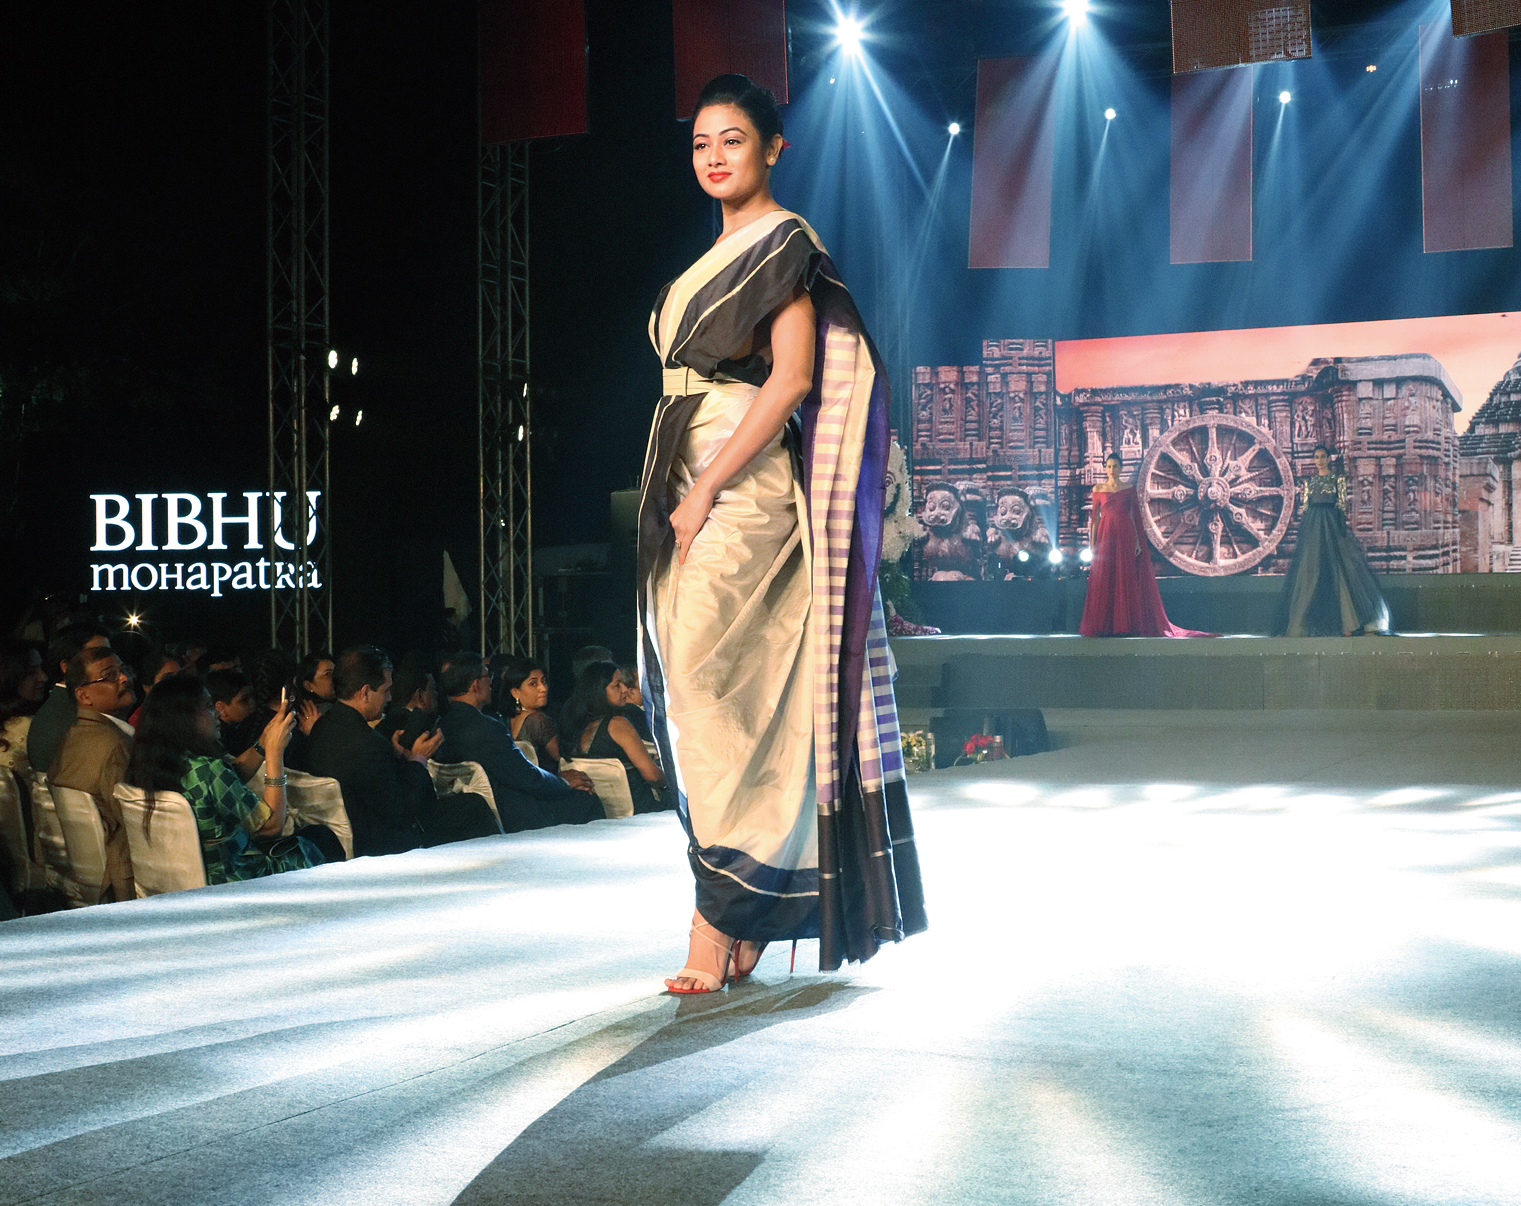 The show also featured saris in Odia weaves, one of them flaunted by Odia actress Archita Sahu